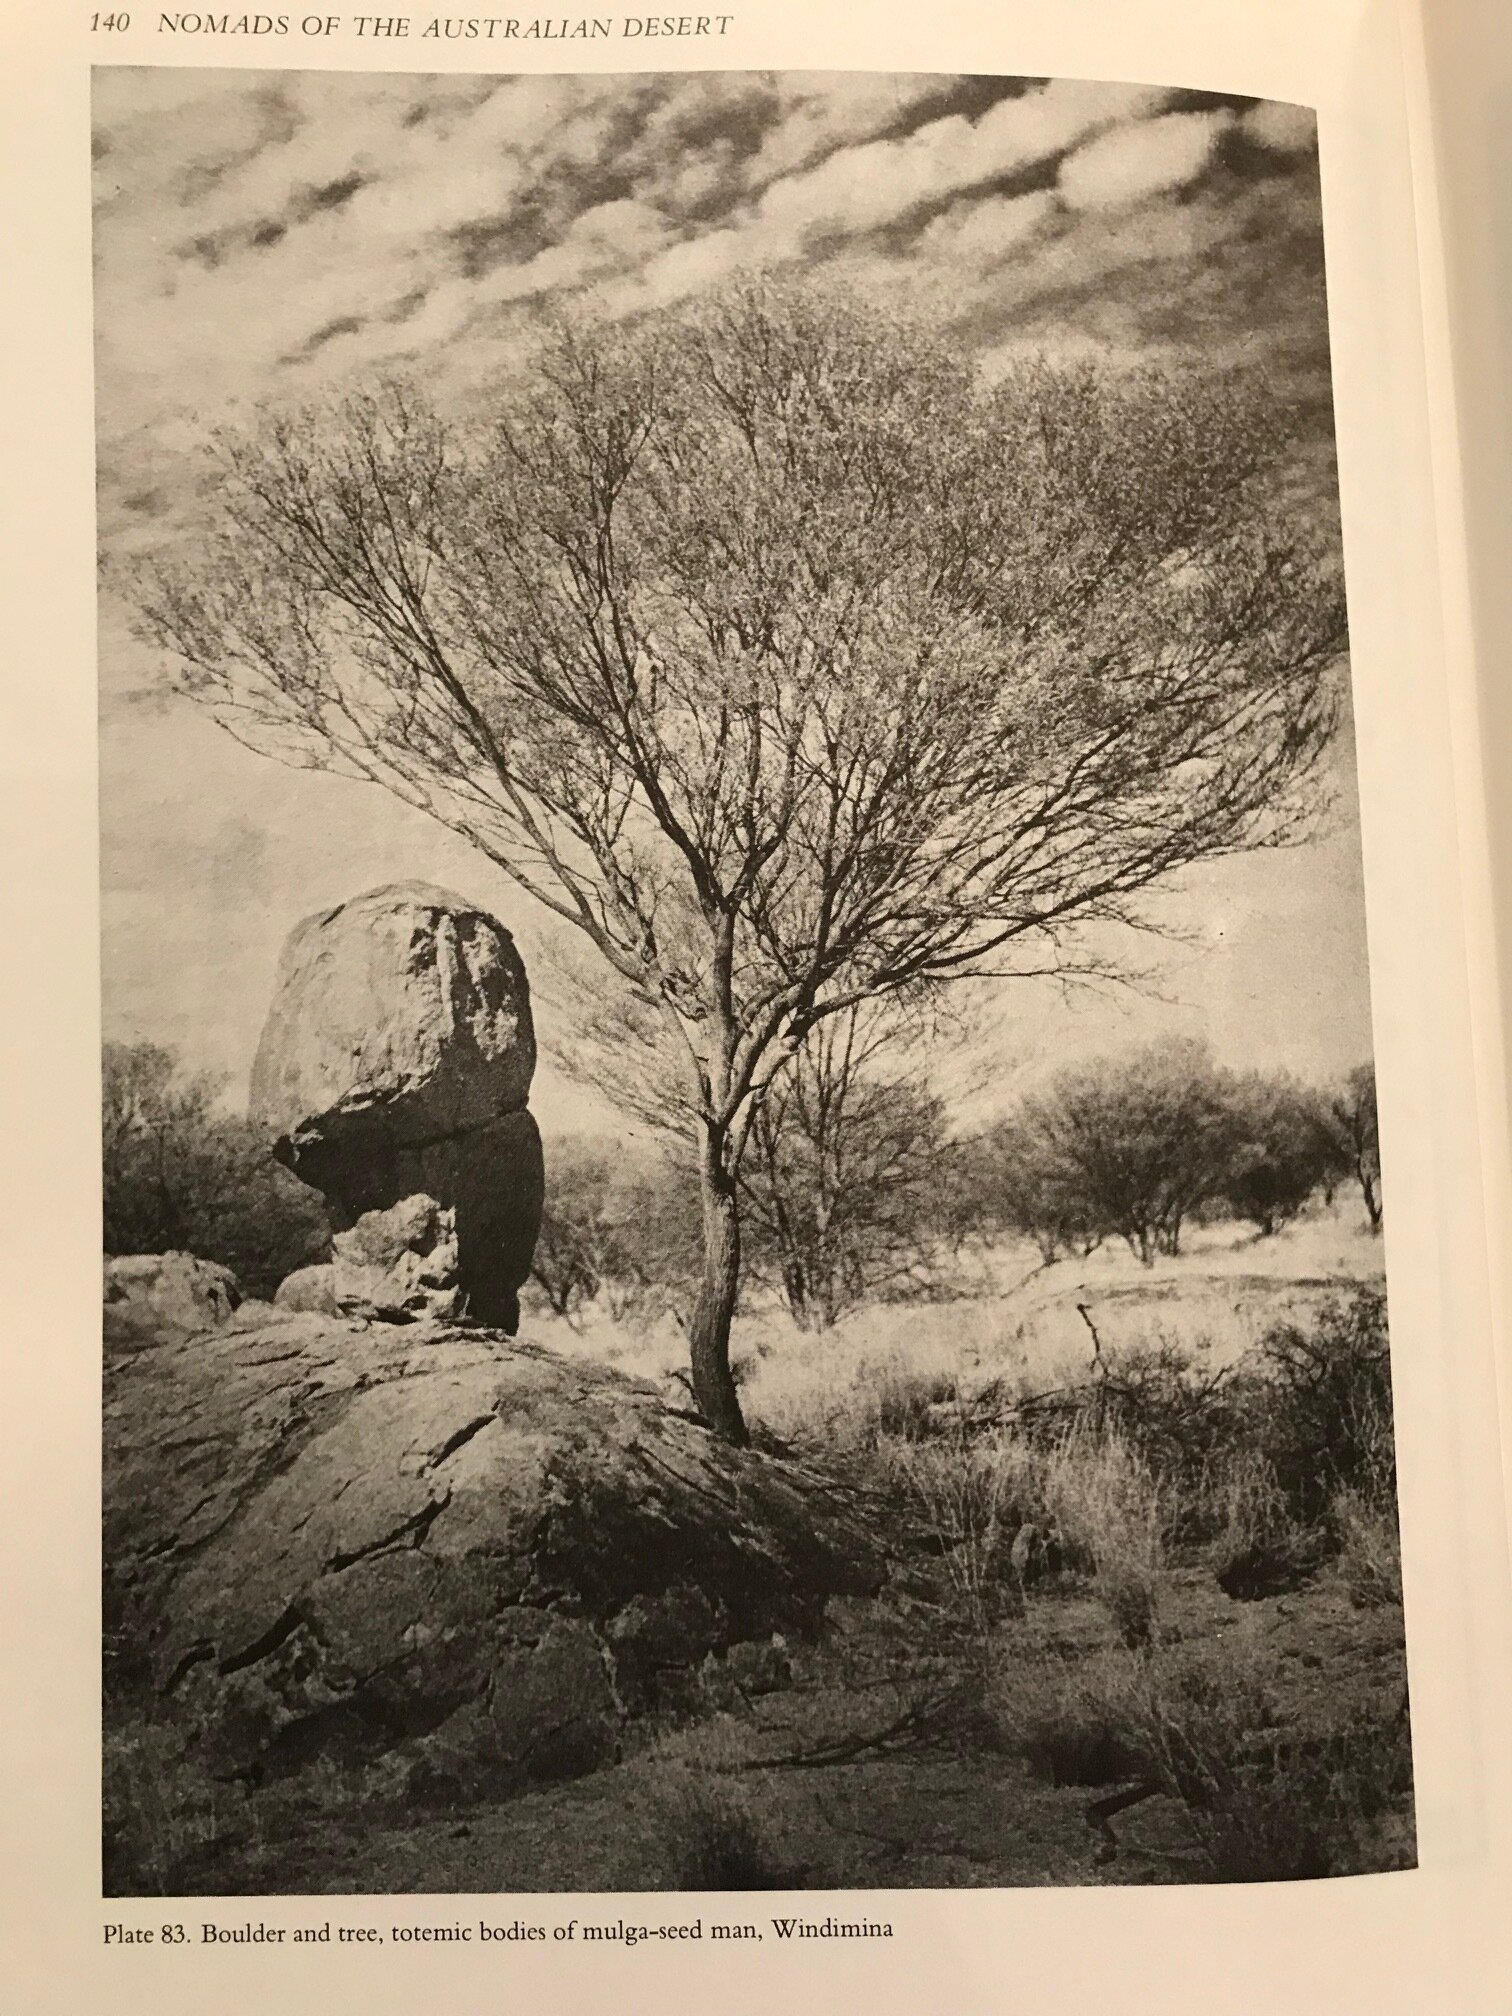 """- """"During the time of creation [there were] four mulga-seed men Windimina, Windulka, Jininpulta and Paralpa…One day while collecting mulga-seed Windimina became ill…[and] collapsed on the ground and died. On the place where he once stood is a single mulga tree, and his body is a pillar of rock. Some time later the other three [Mulga-men]…also died and their bodies were transformed into boulders""""- Mountford, ibid, p139"""